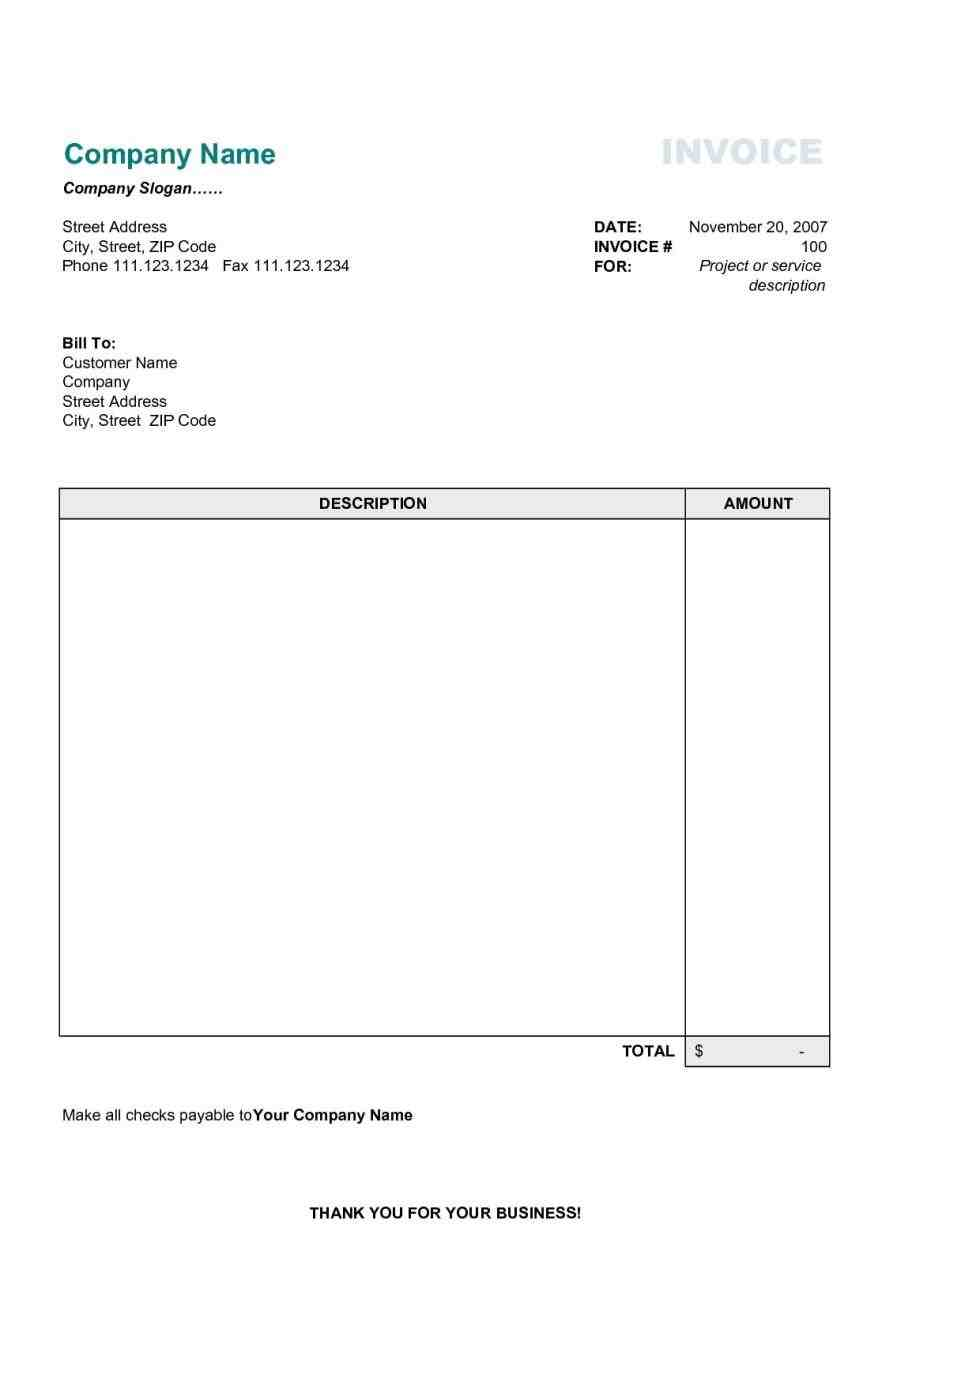 printable commercial invoice sample business rhpinterestcom for jewelry shipment no value sample Top 5 Resources To Get Free Commercial Invoice